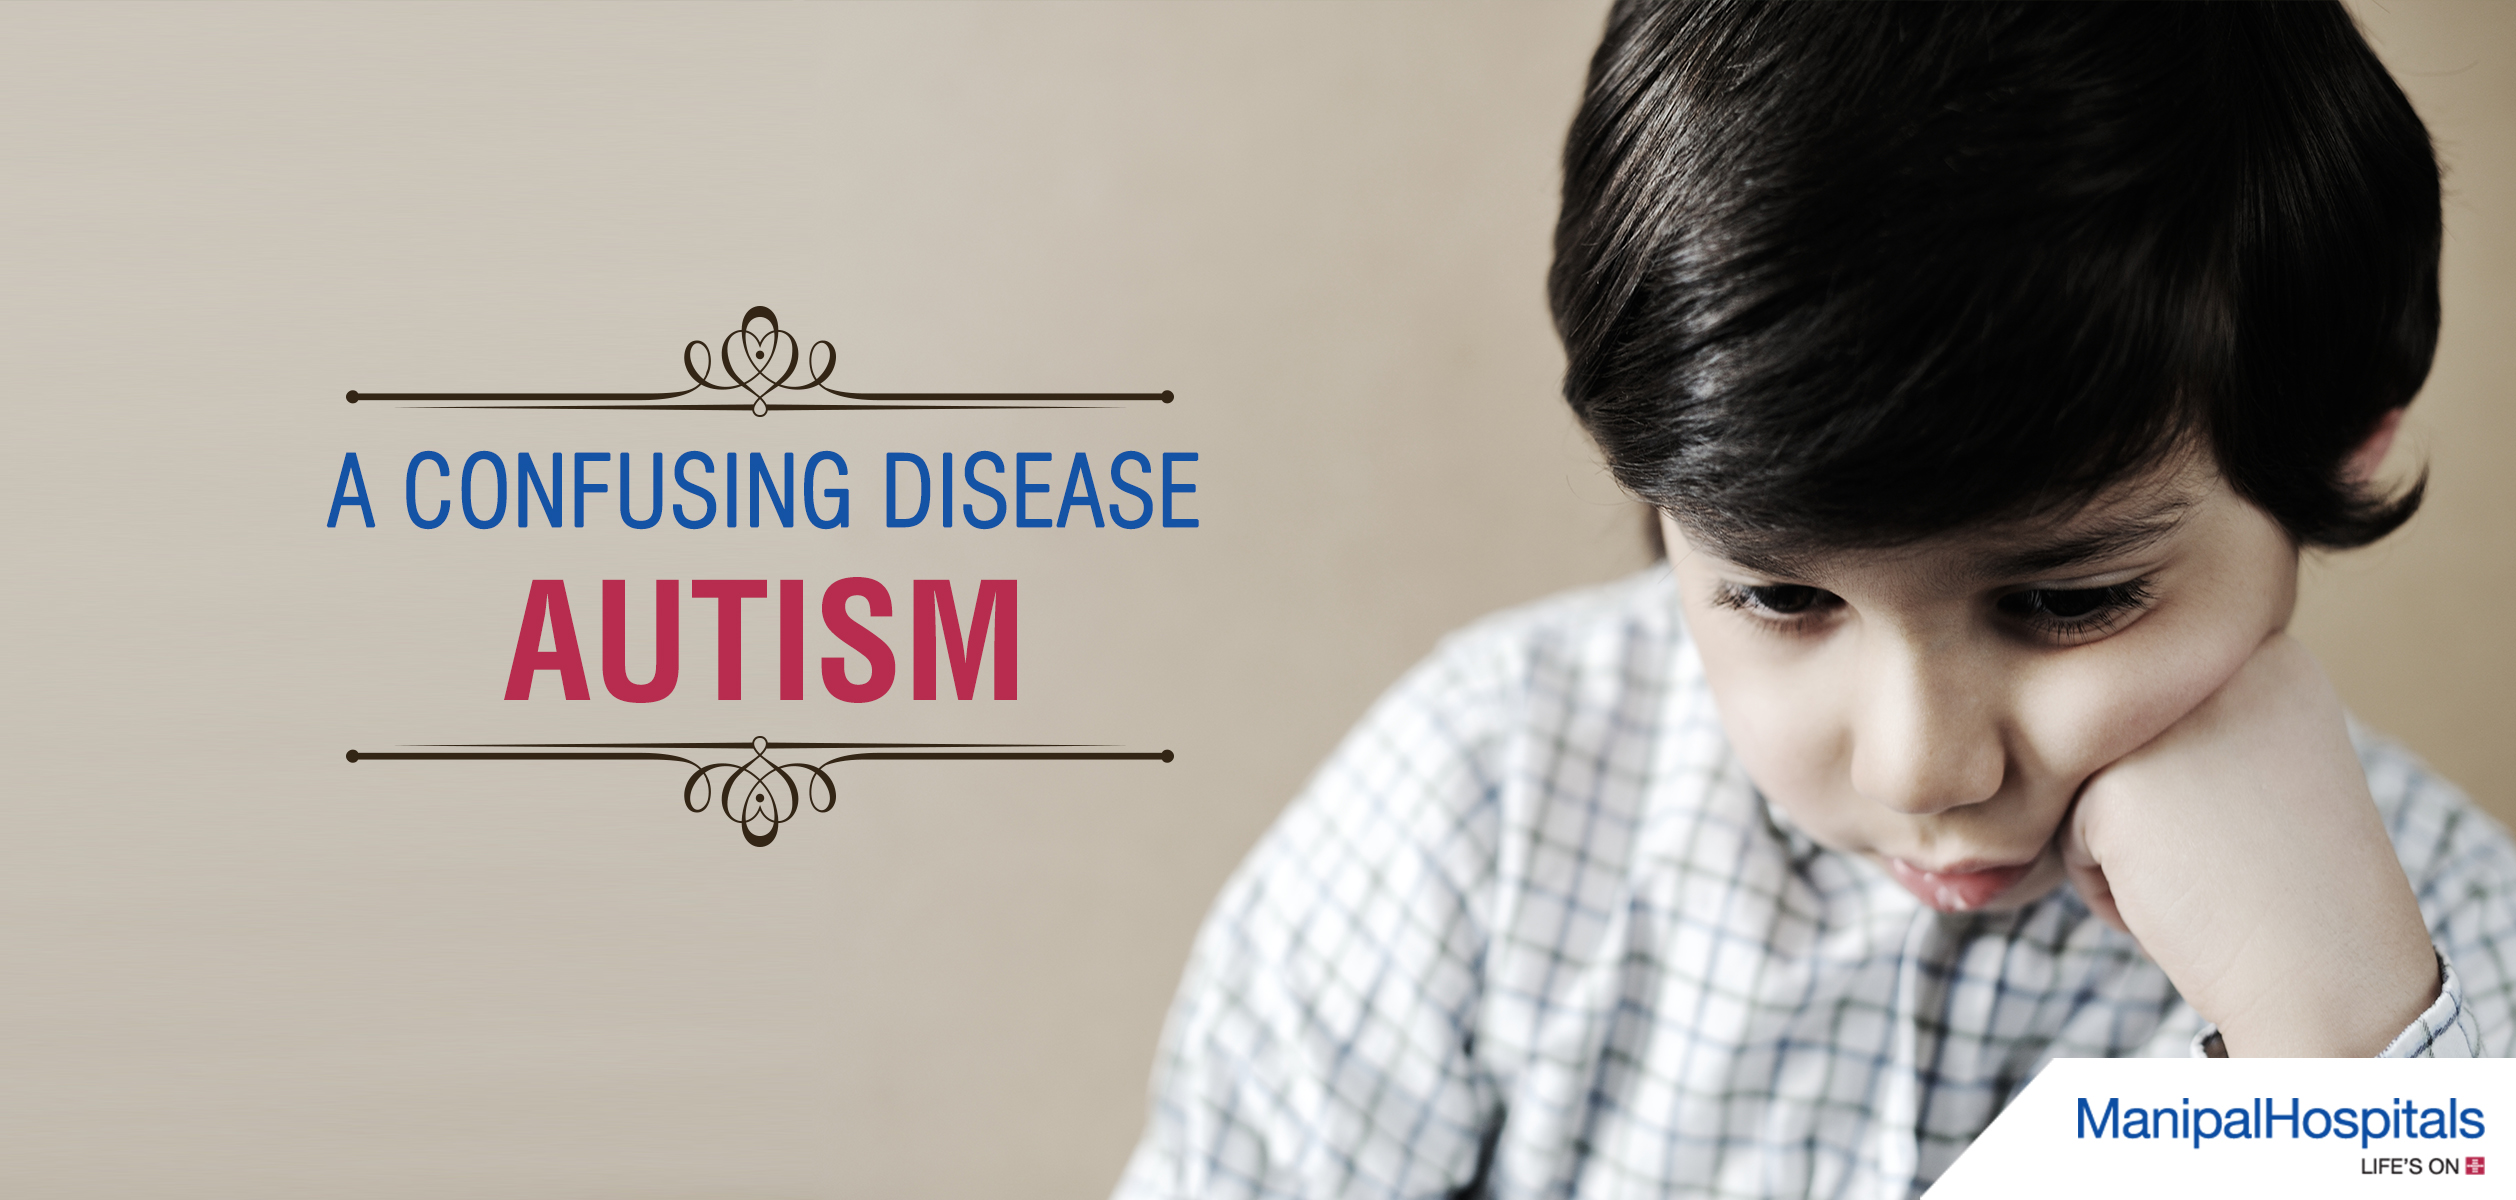 AUTISM – A Confusing Disease